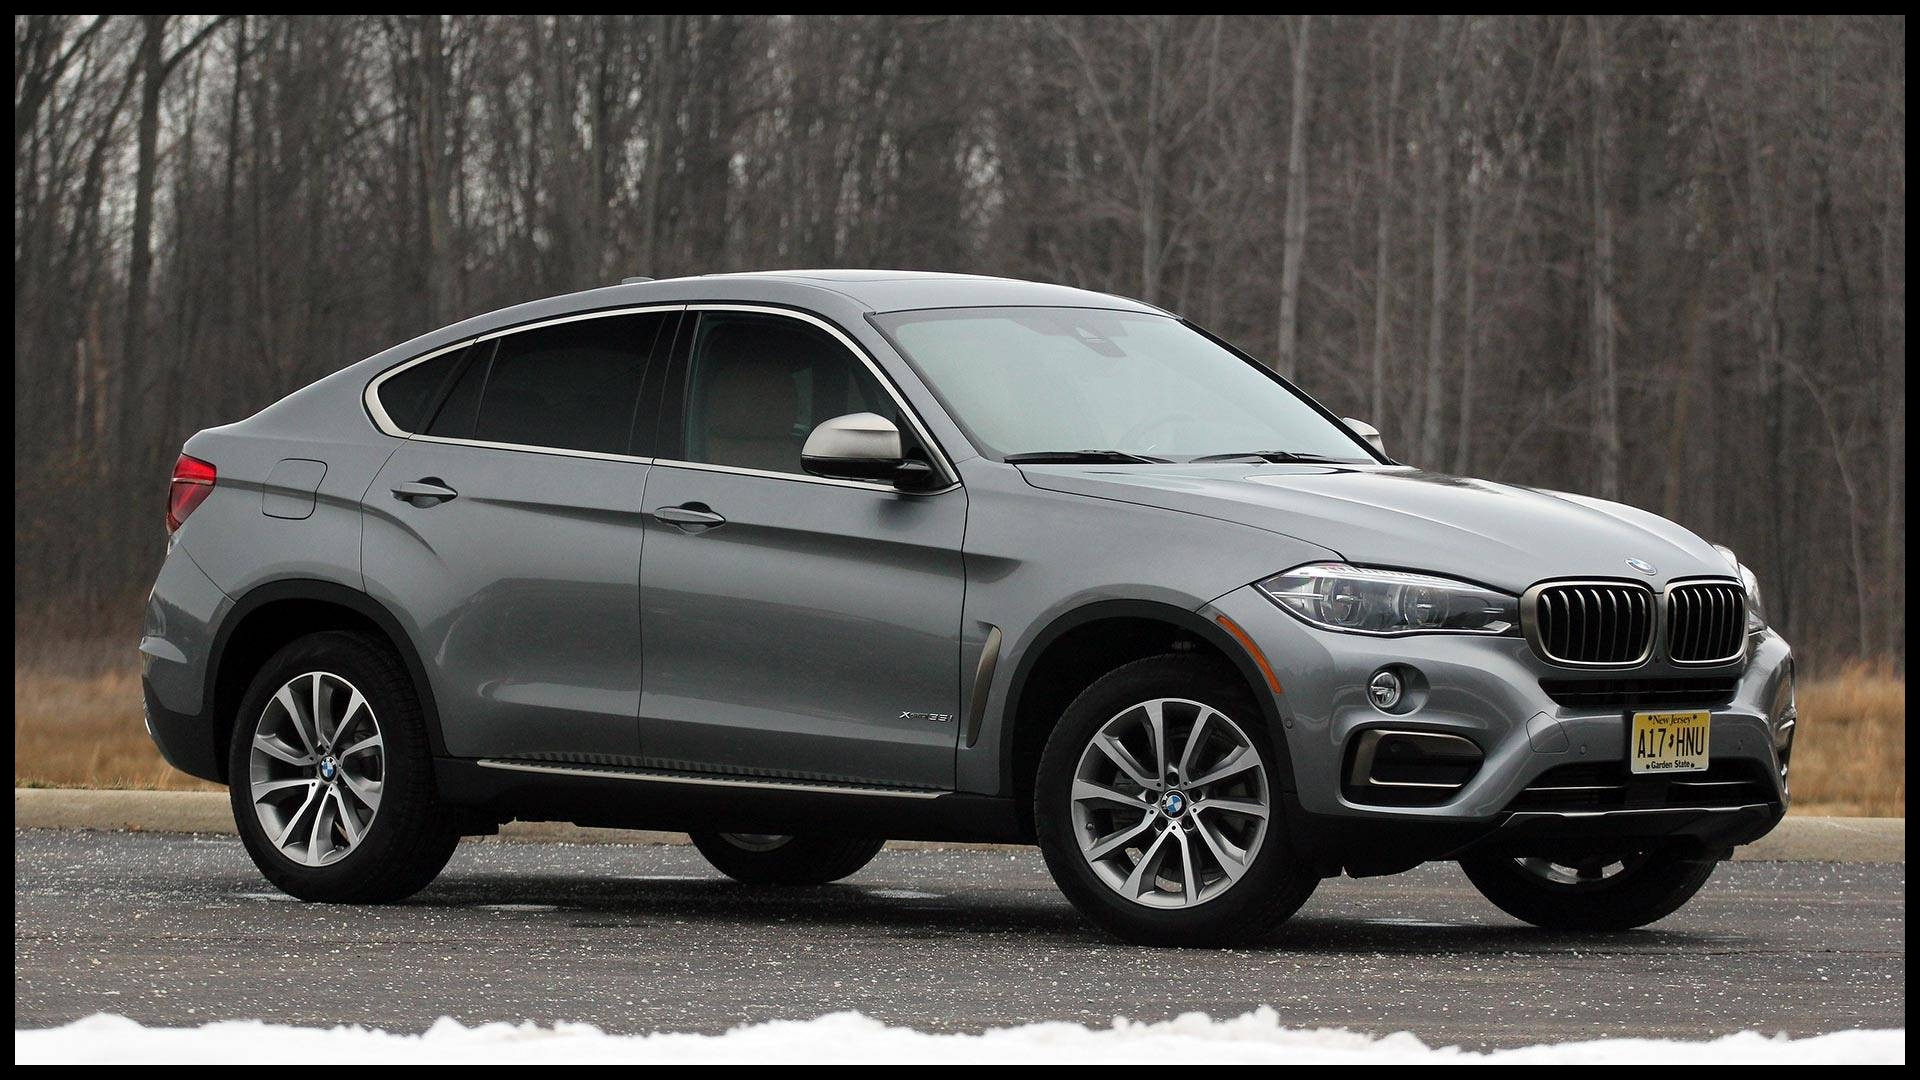 Key for Bmw X5 Not Working Lovely 2018 Bmw X6 Review Not Much Utility Key